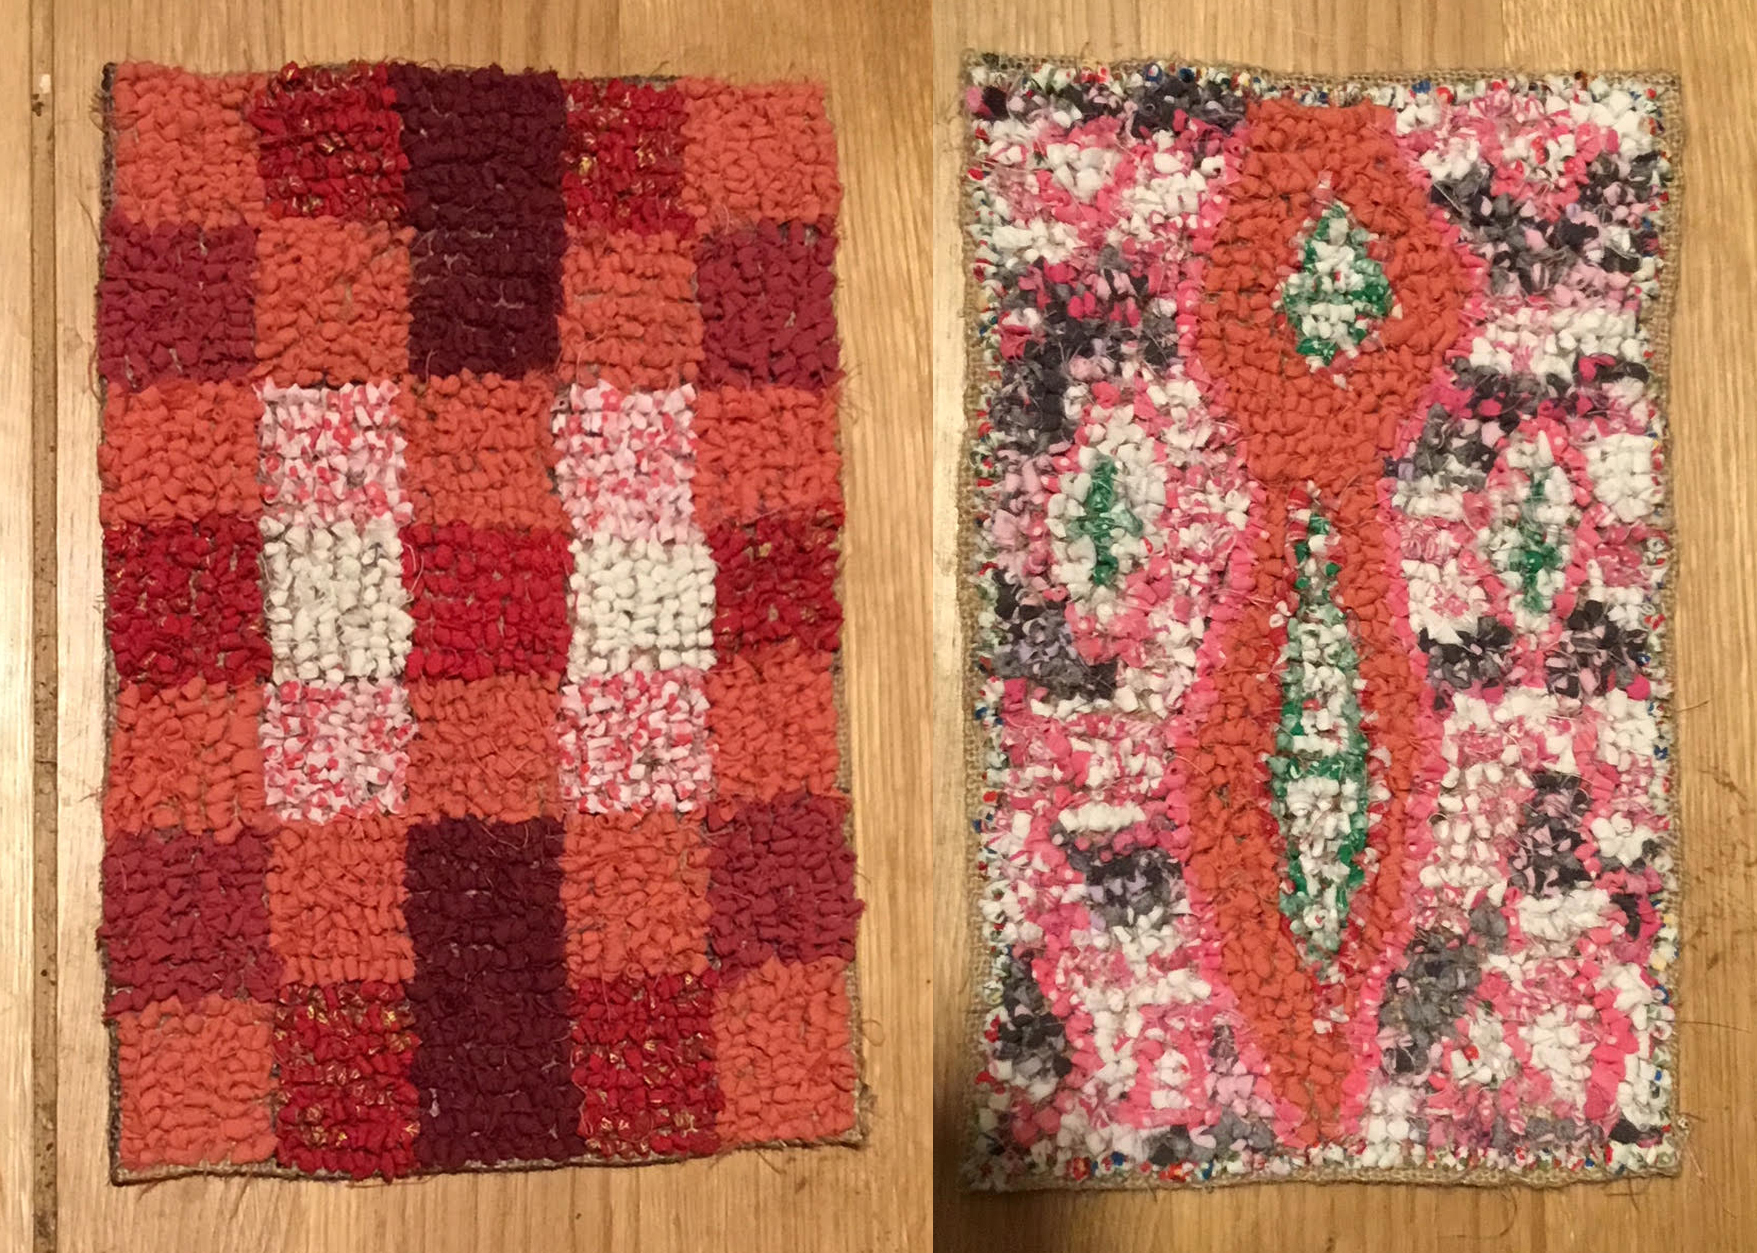 Rag rug placemats in loopy rag rugging in oranges, reds and pink materials.